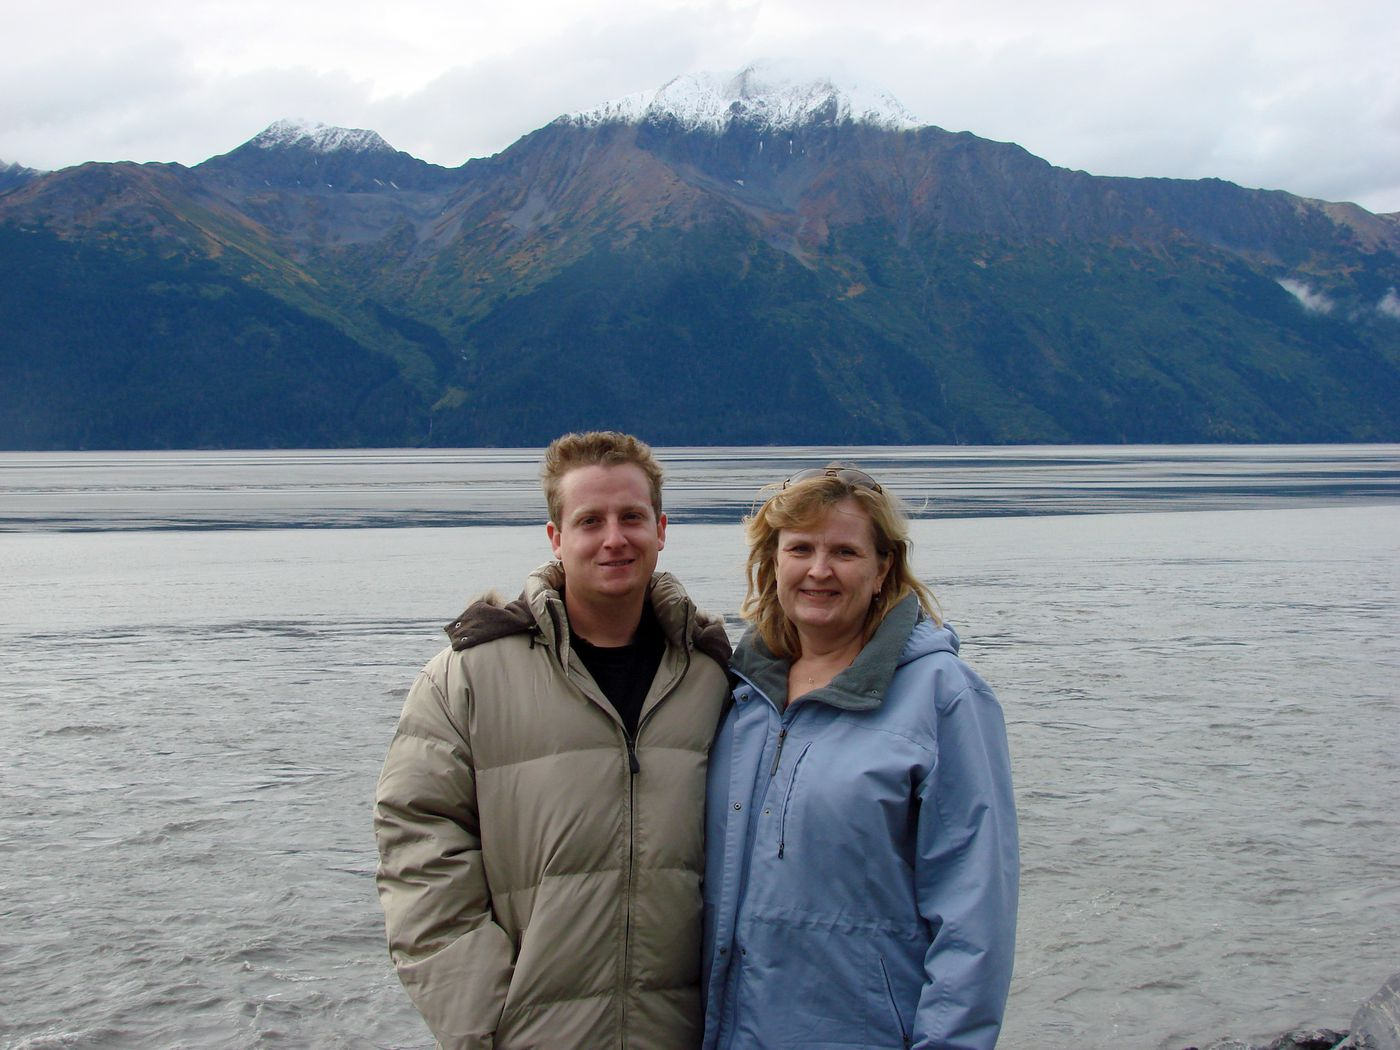 Kelly Stephens and his mother, Virginia, on an Alaska trip in 2007. (Photo courtesy of Virginia Stephens)